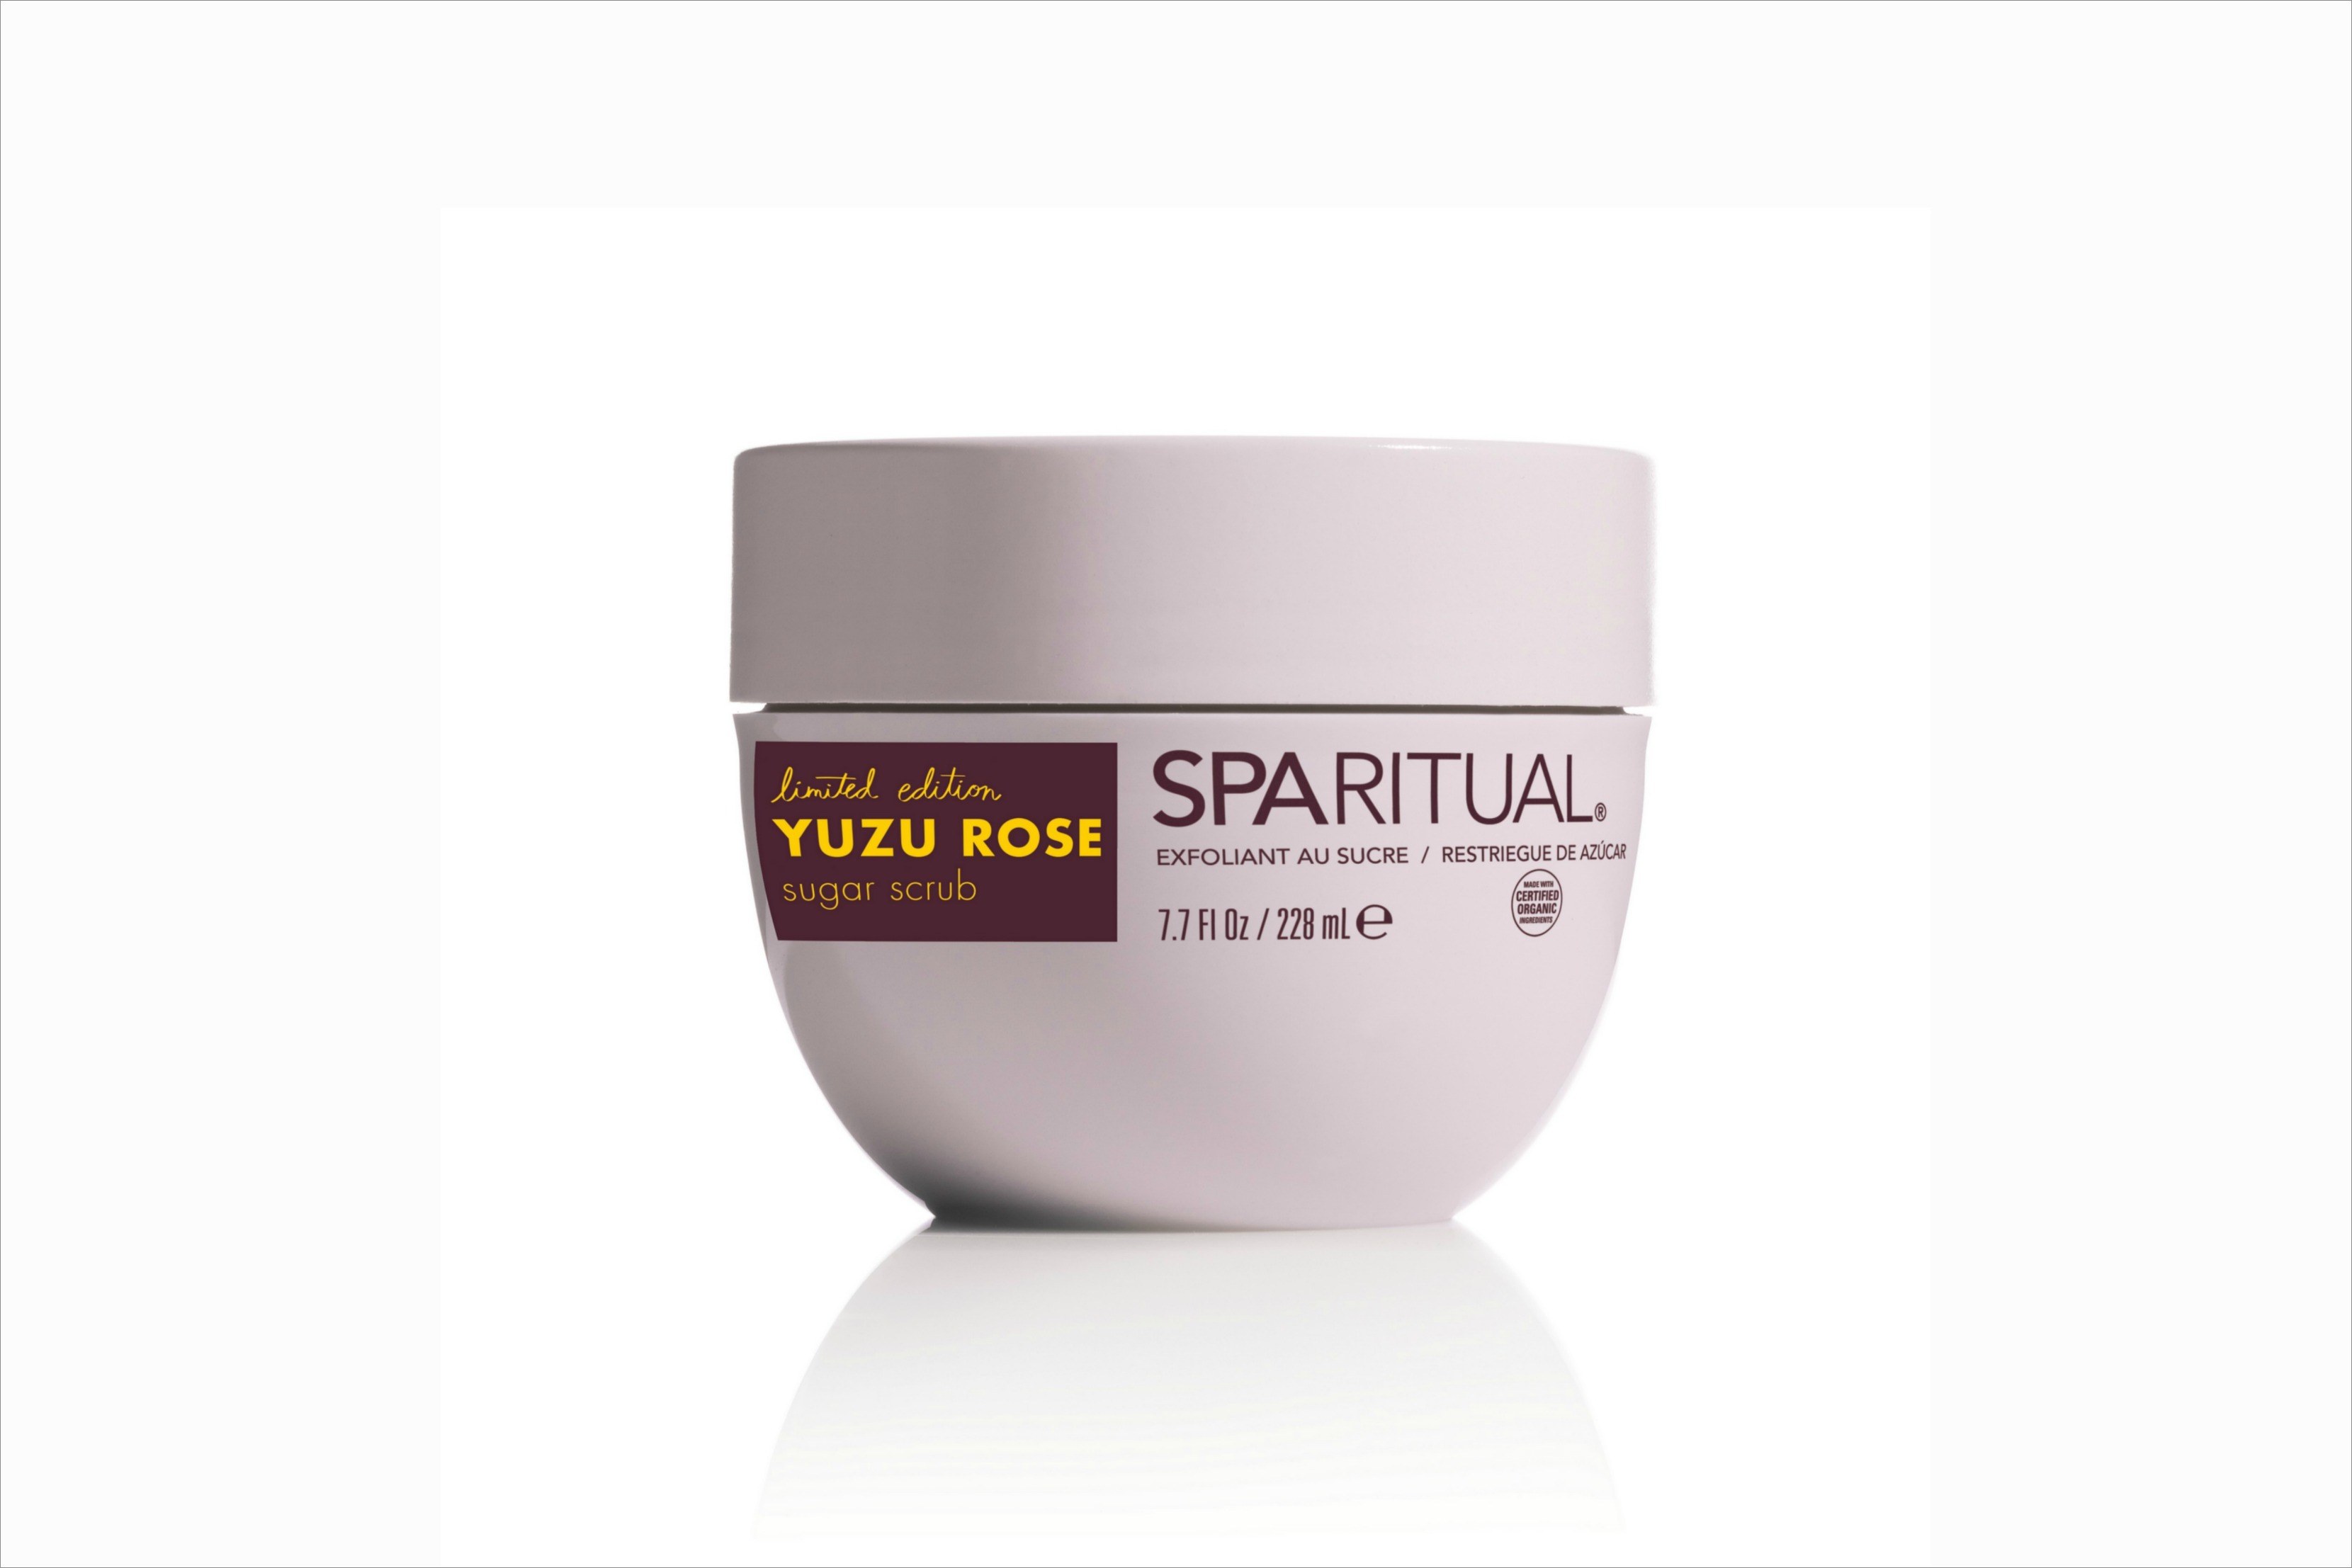 SpaRitual limited edition Yuzu Rose sugar scrub